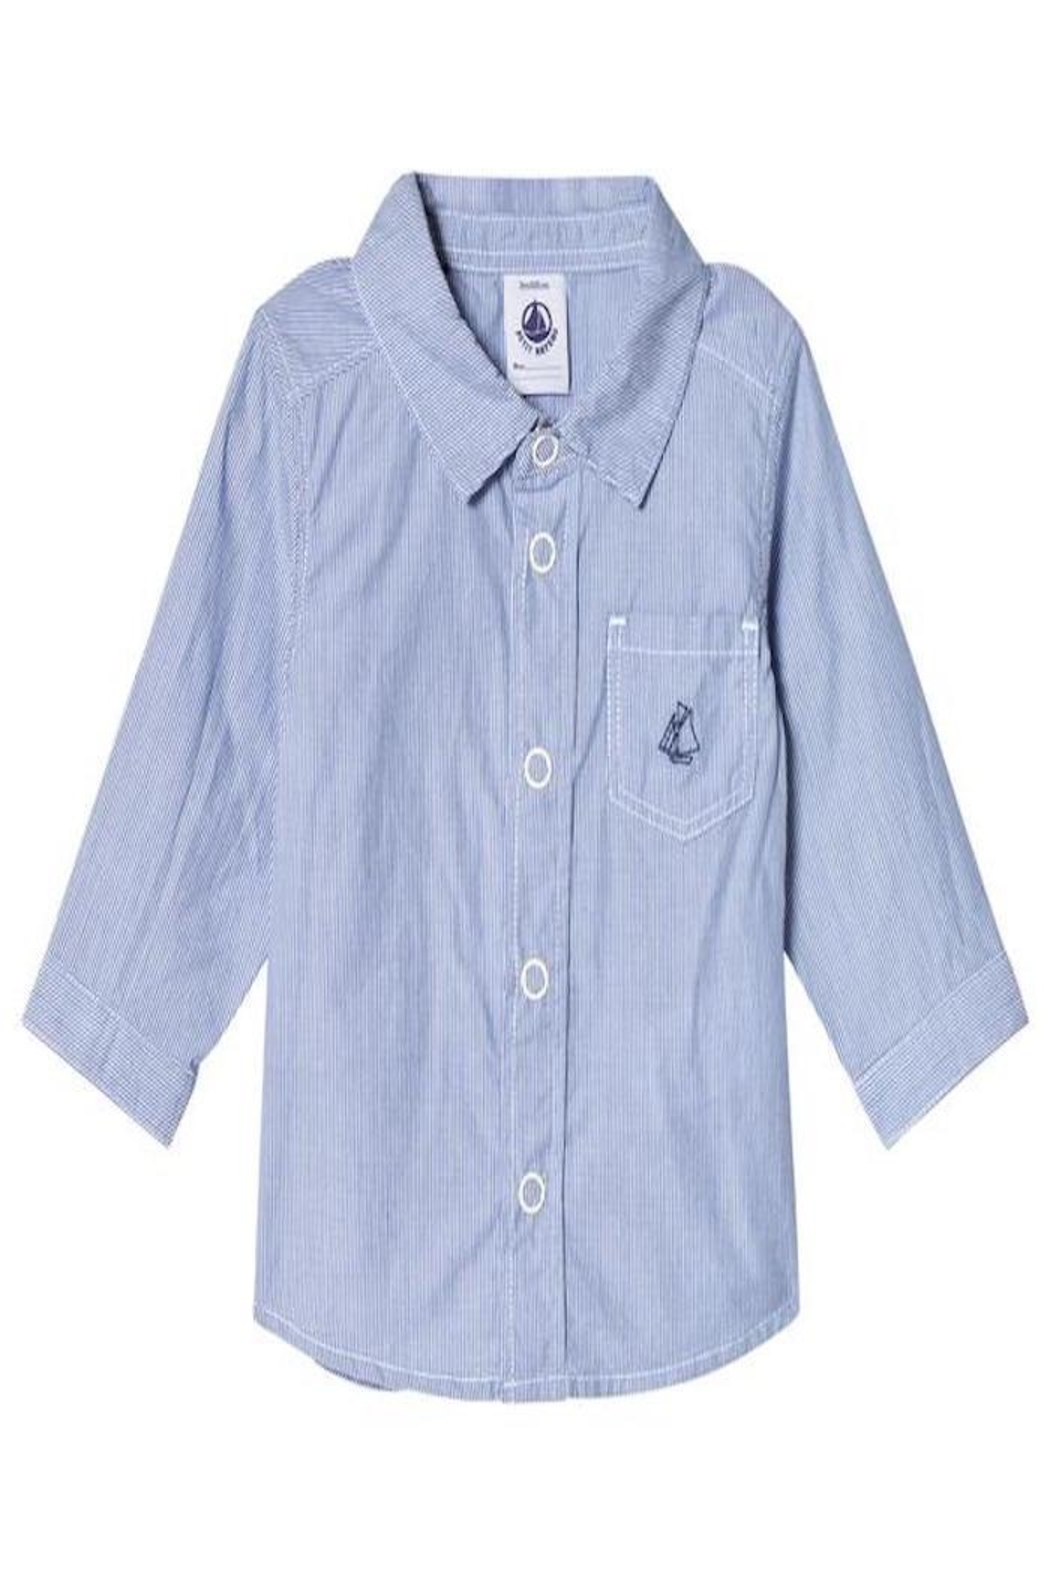 petit bateau Blue Dress Shirt - Main Image